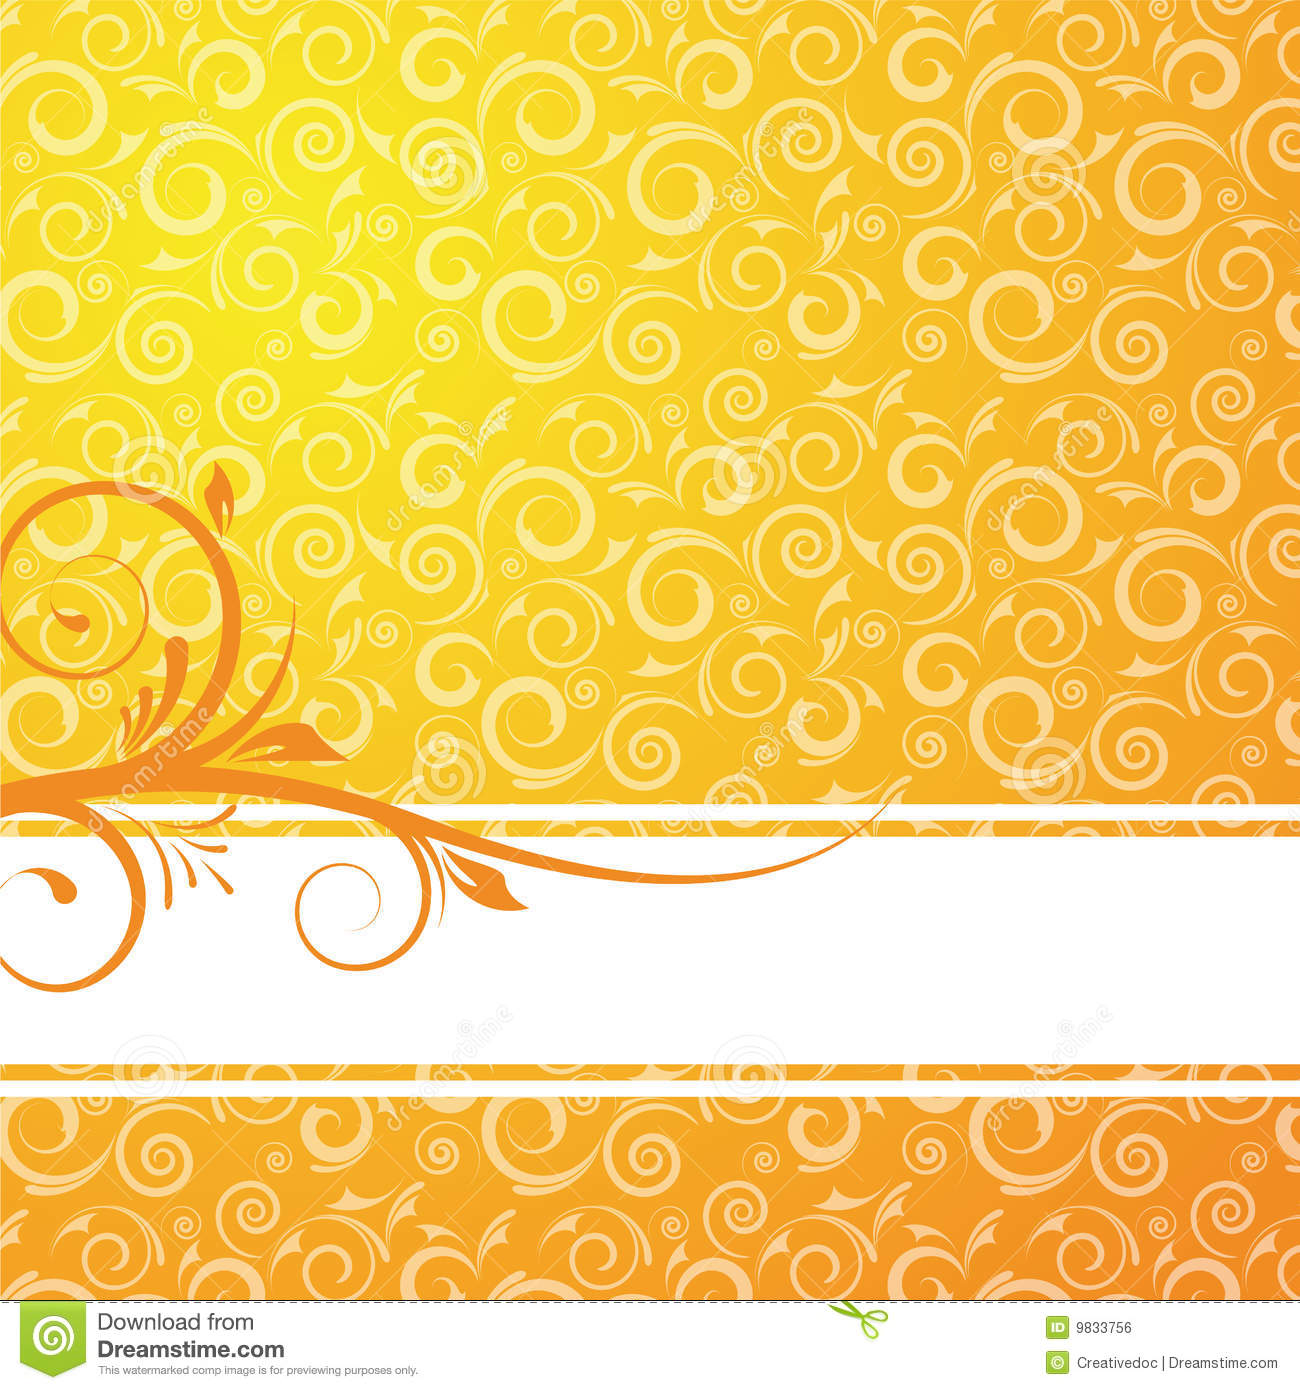 Floral Background For Design Royalty Free Stock Image - Image: 9833756